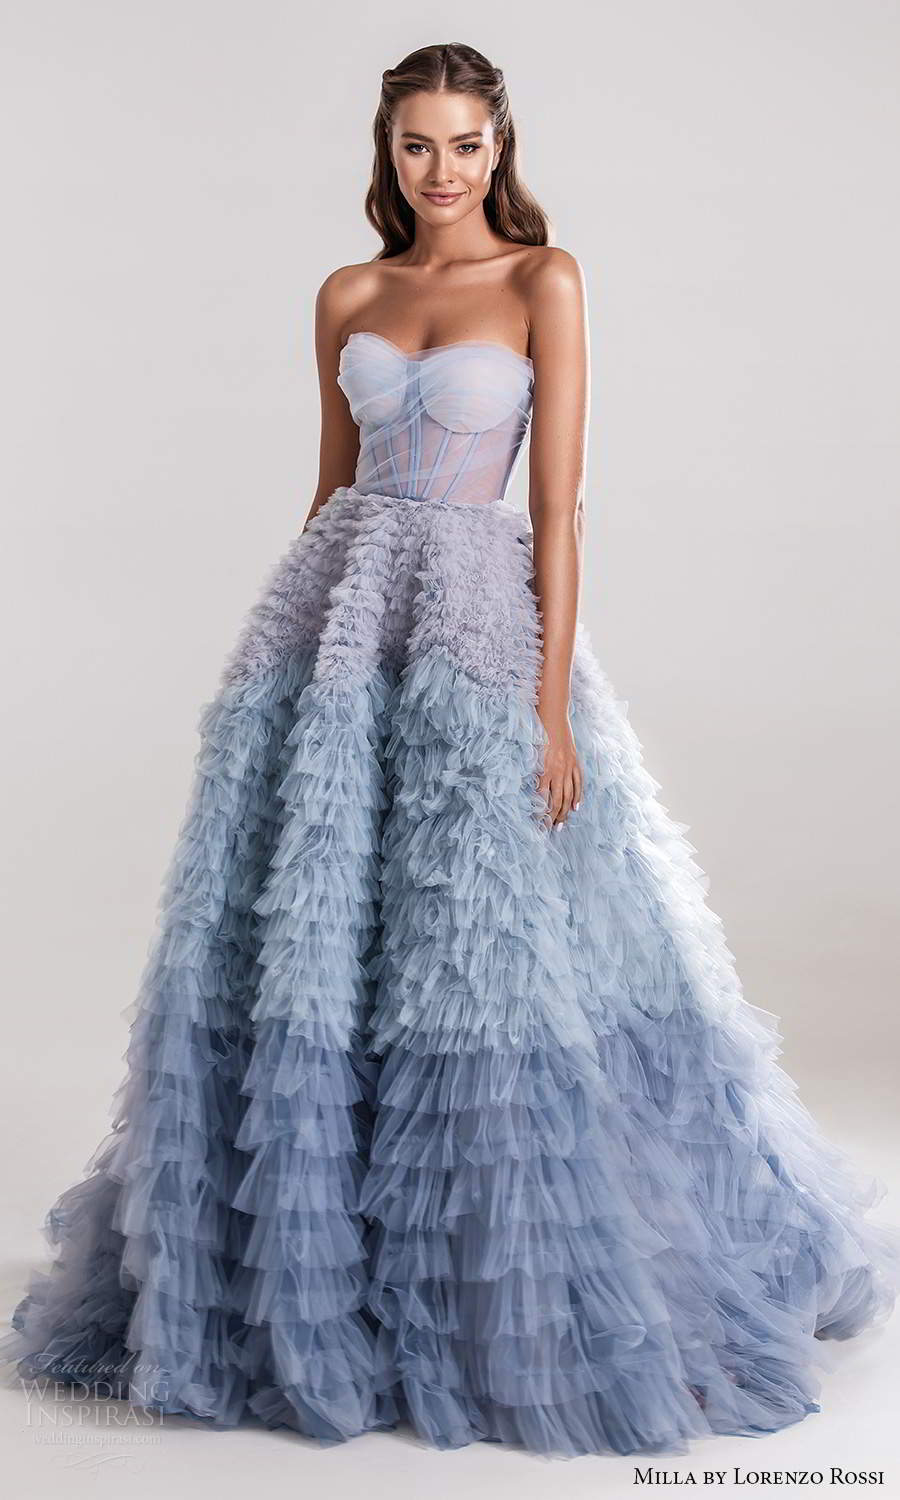 milla by lorenzo rossi 2020 rtw strapless sweetheart neckline ruched corset bodice a line ball gown wedding dress ruffle skirt ombre blue (17) mv